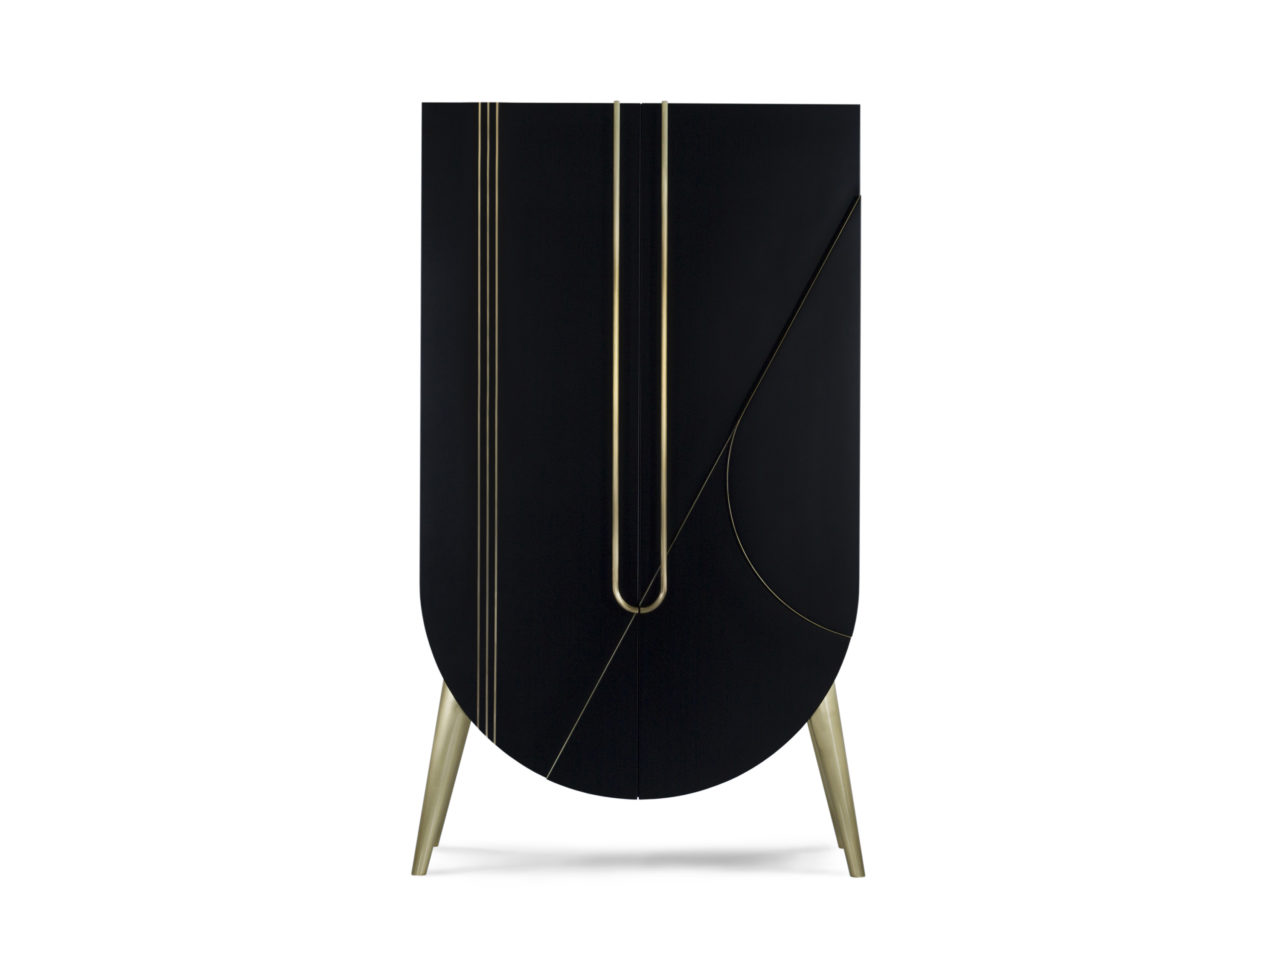 saqris-cabinet-black-marble-gold-details-for-luxury-bar-residential-project-circular-cabinet